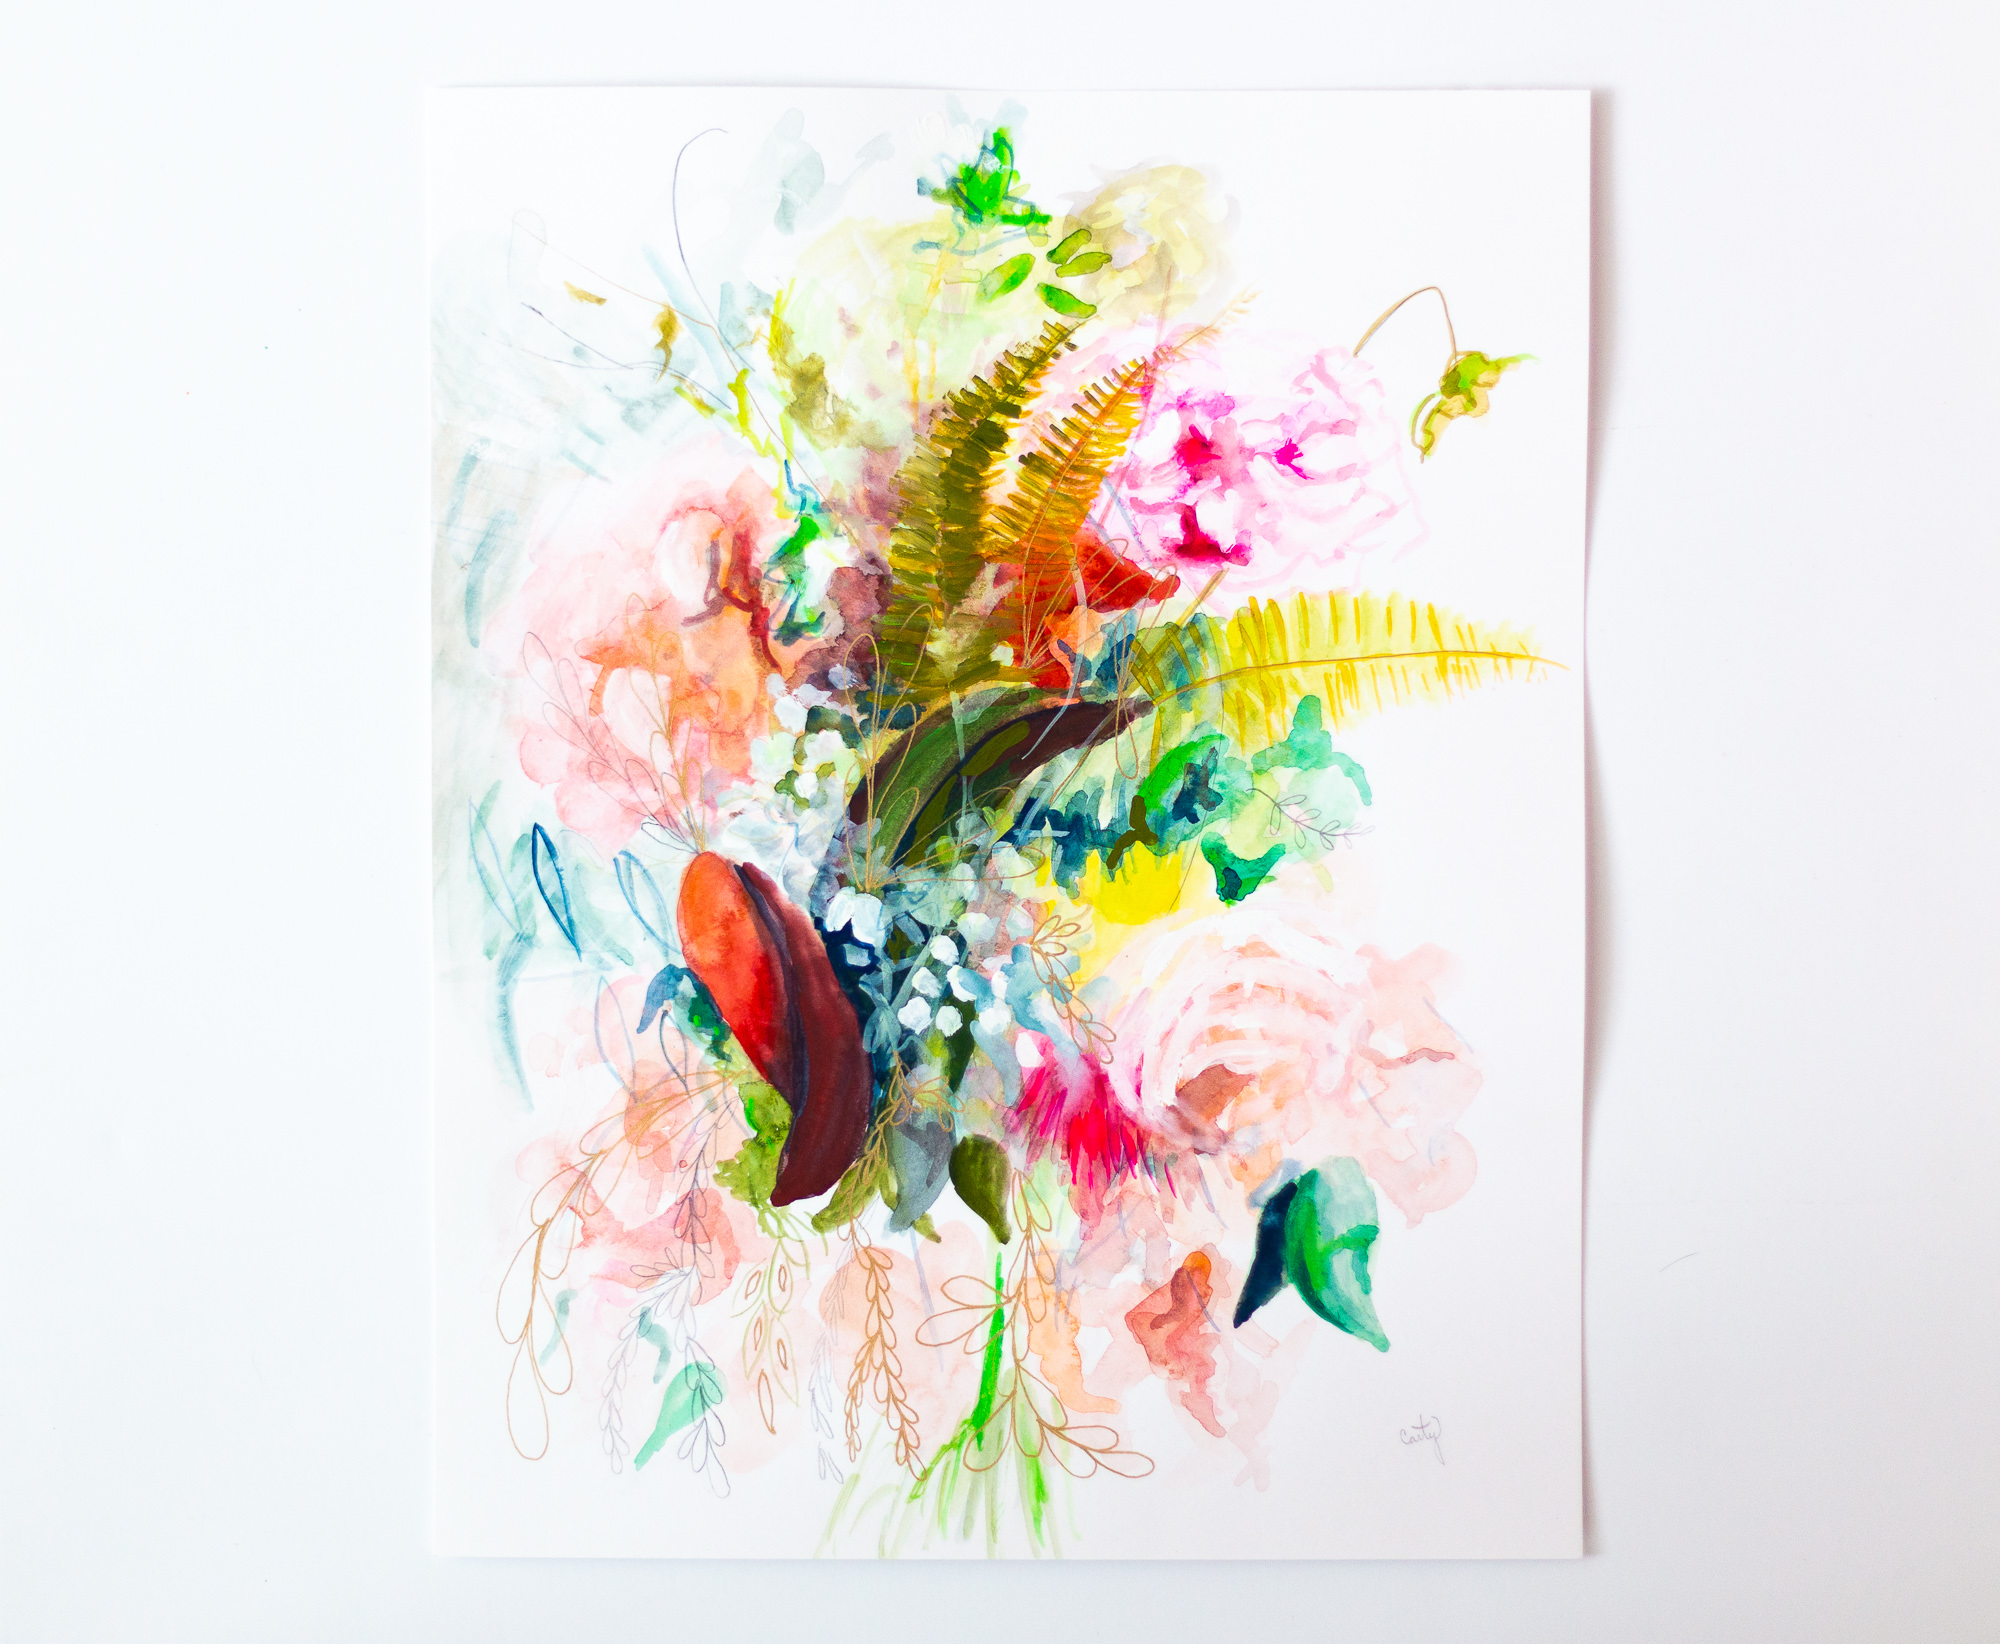 Abstract Floral Painting by Megan Carty